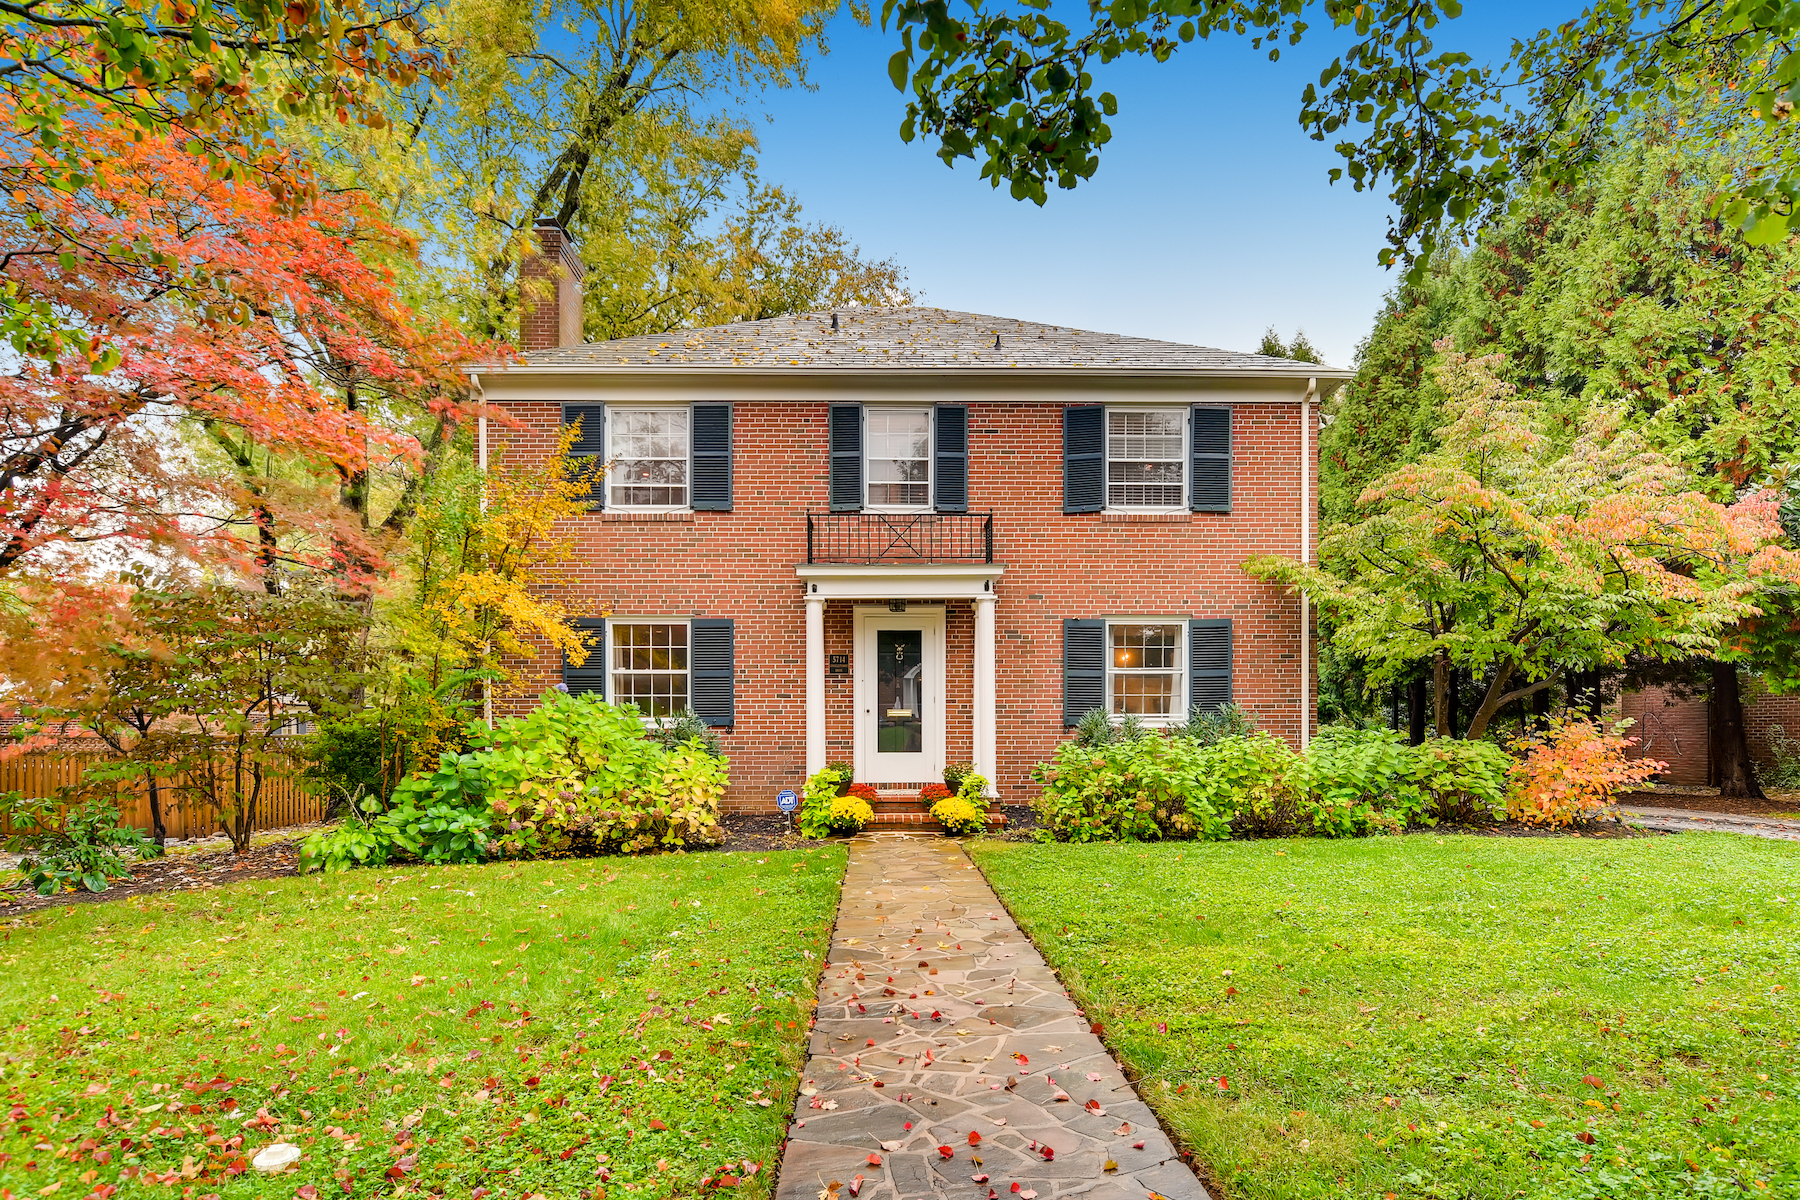 Property for Sale at Baltimore 5714 Charlestowne Drive Baltimore, Maryland 21212 United States